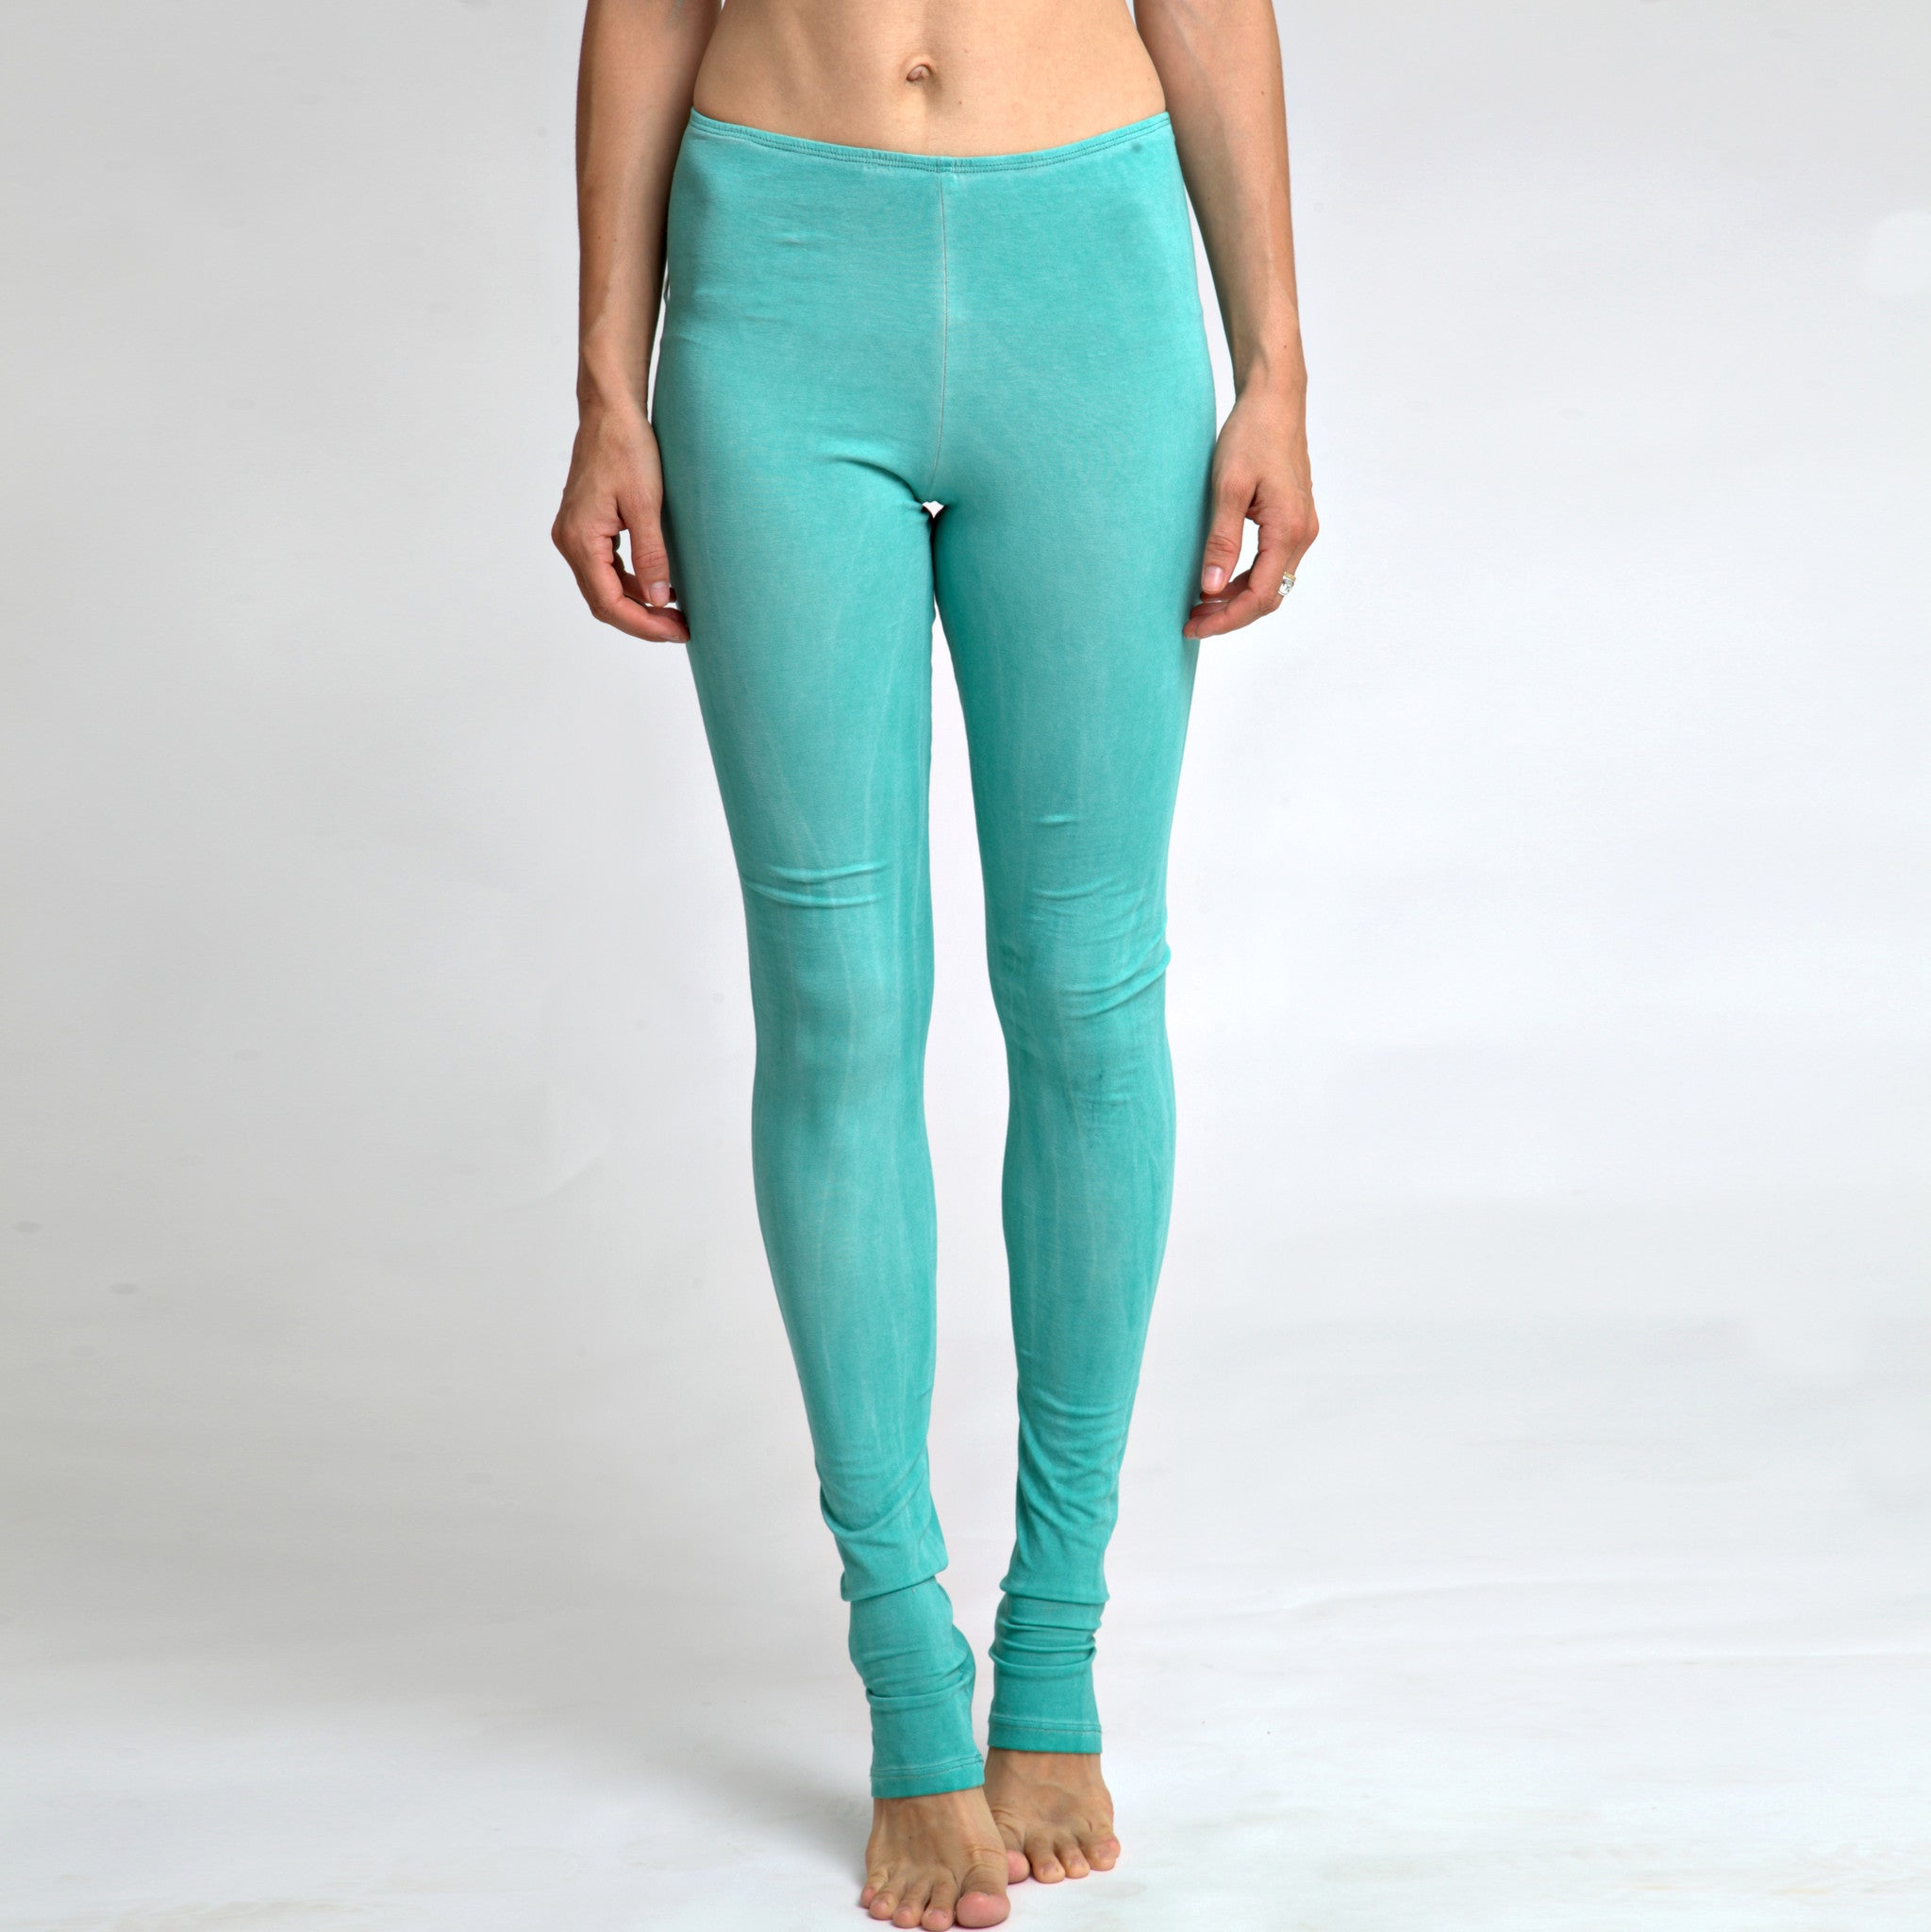 Leggings in stone wash mint - DuendeFashion  - 3